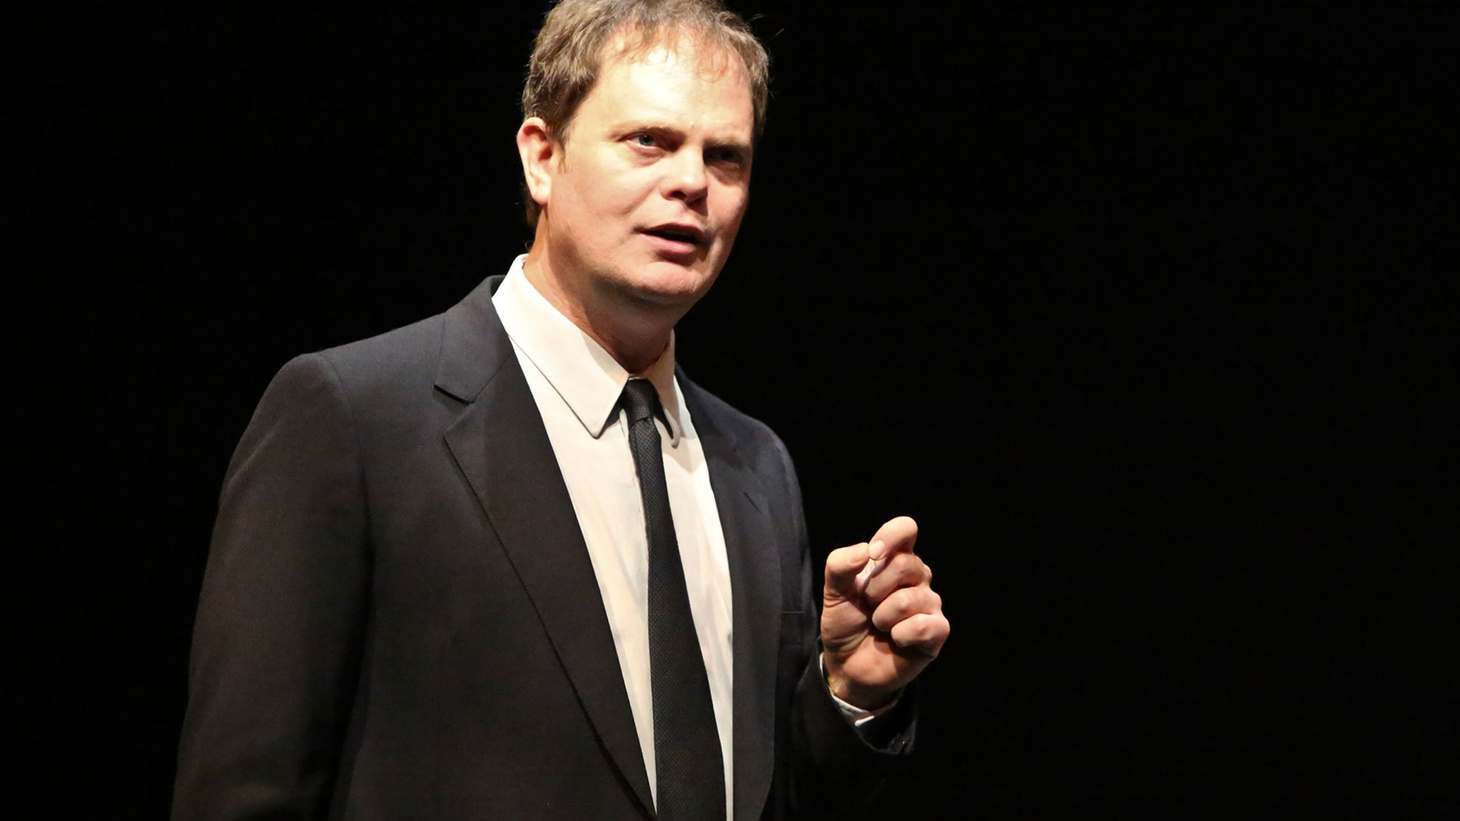 Actor Rainn Wilson stops by The Treatment to discuss his personal and professional transformations as highlighted in his new book The Bassoon King: My Life in Art, Faith, and Idiocy and in his monologue performance in Thom Pain (based on nothing).